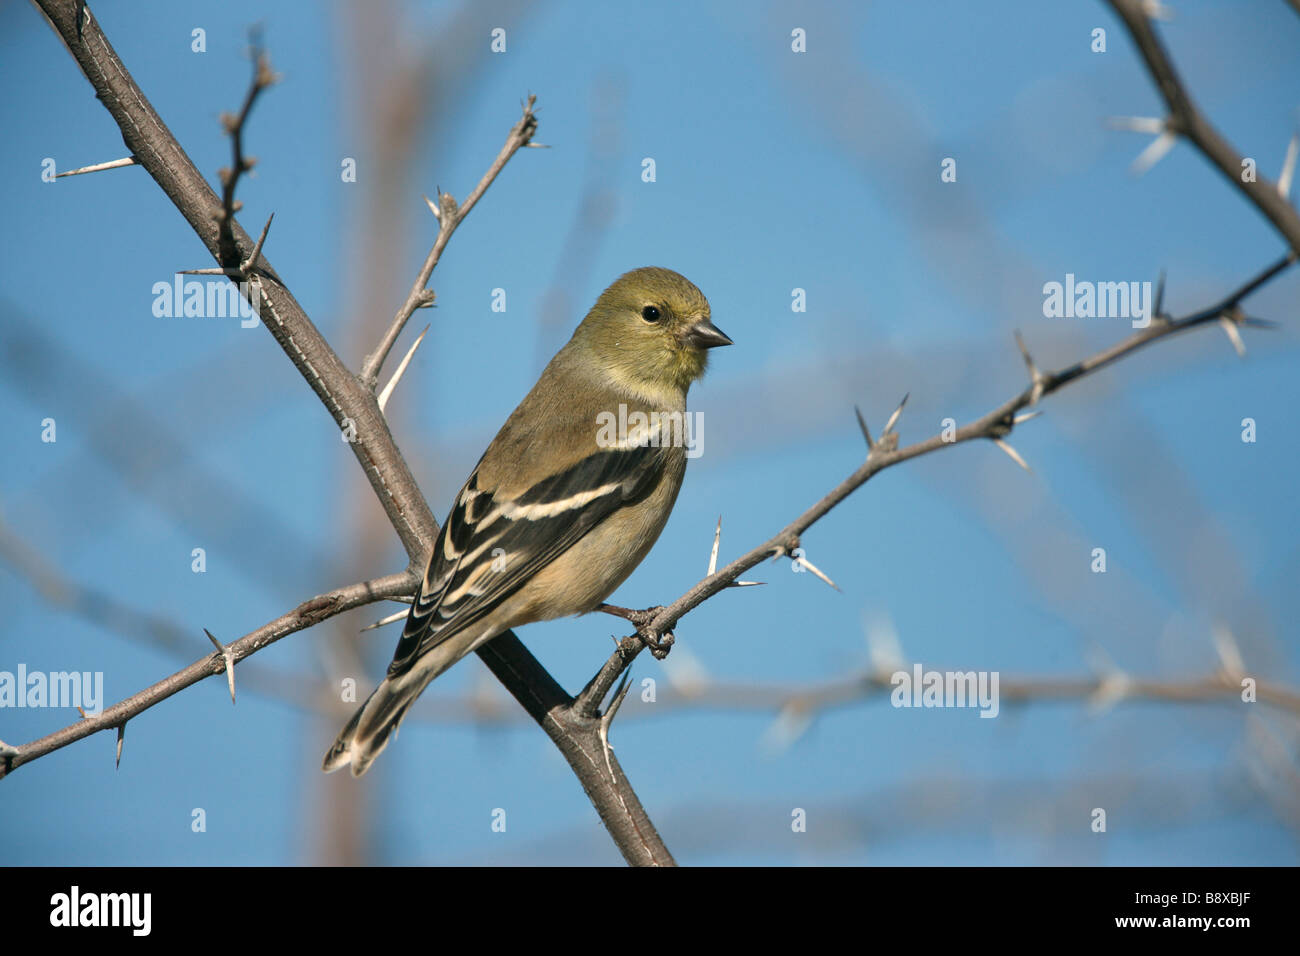 American goldfinch Carduelis tristis New Mexico USA winter - Stock Image